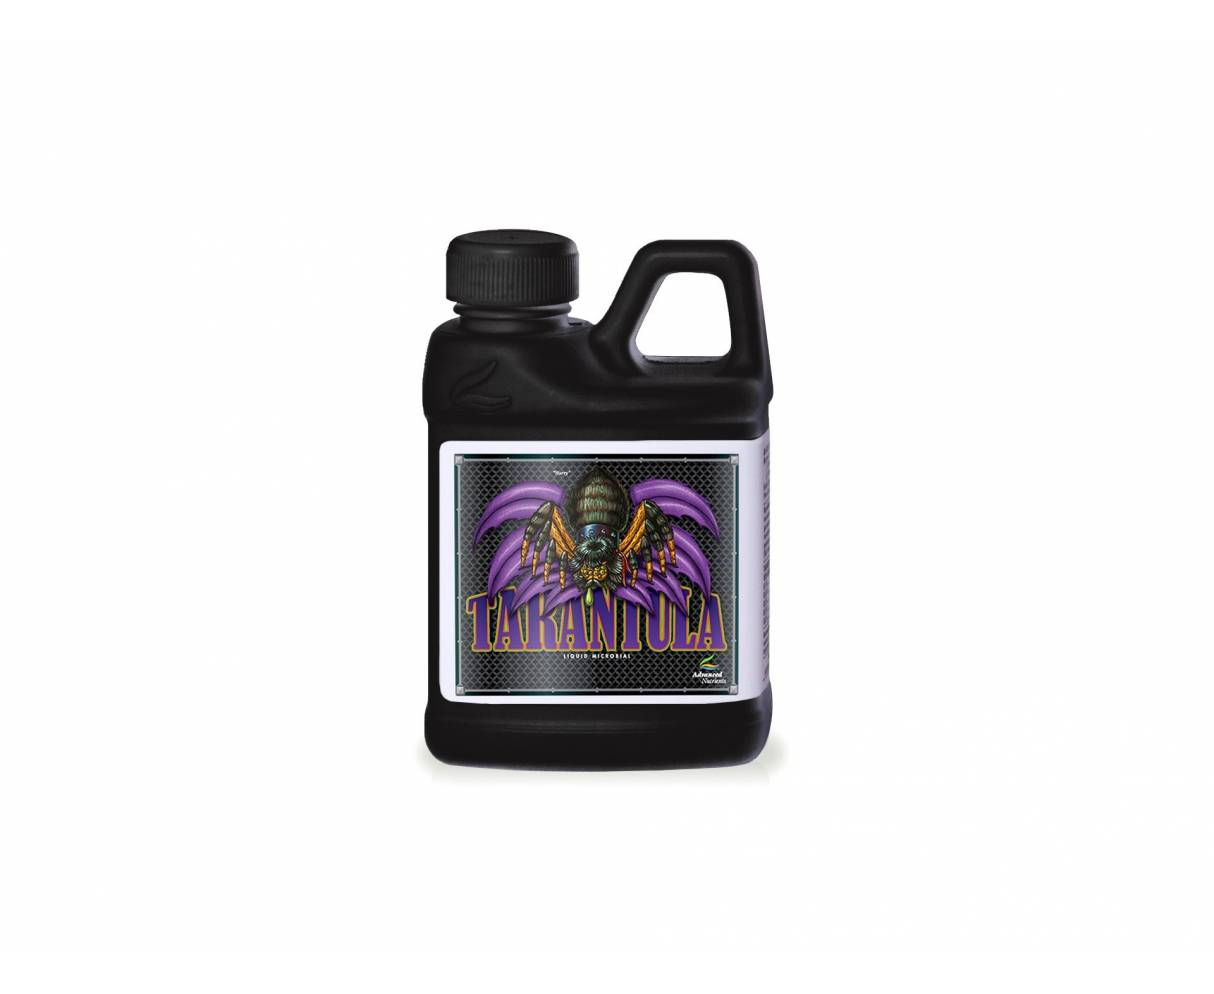 Tarántula (250mL/500mL)